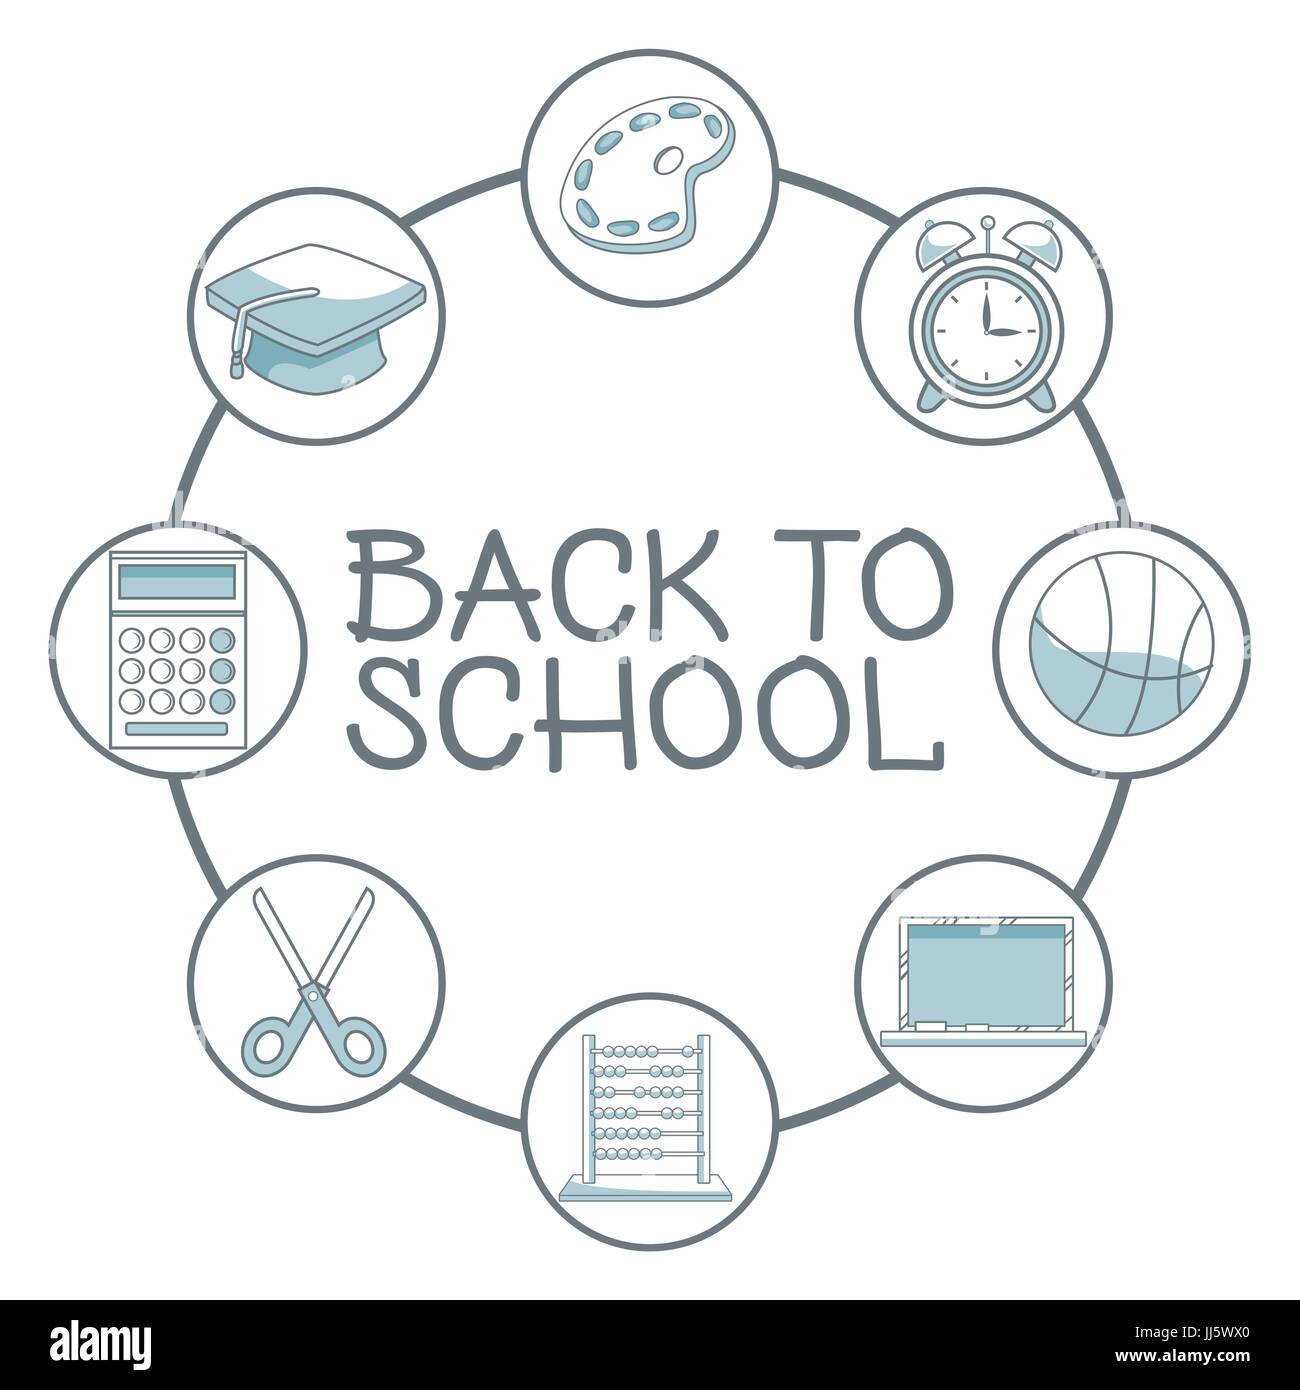 white background with color silhouette shading of school elements academic around to text back school - Stock Image